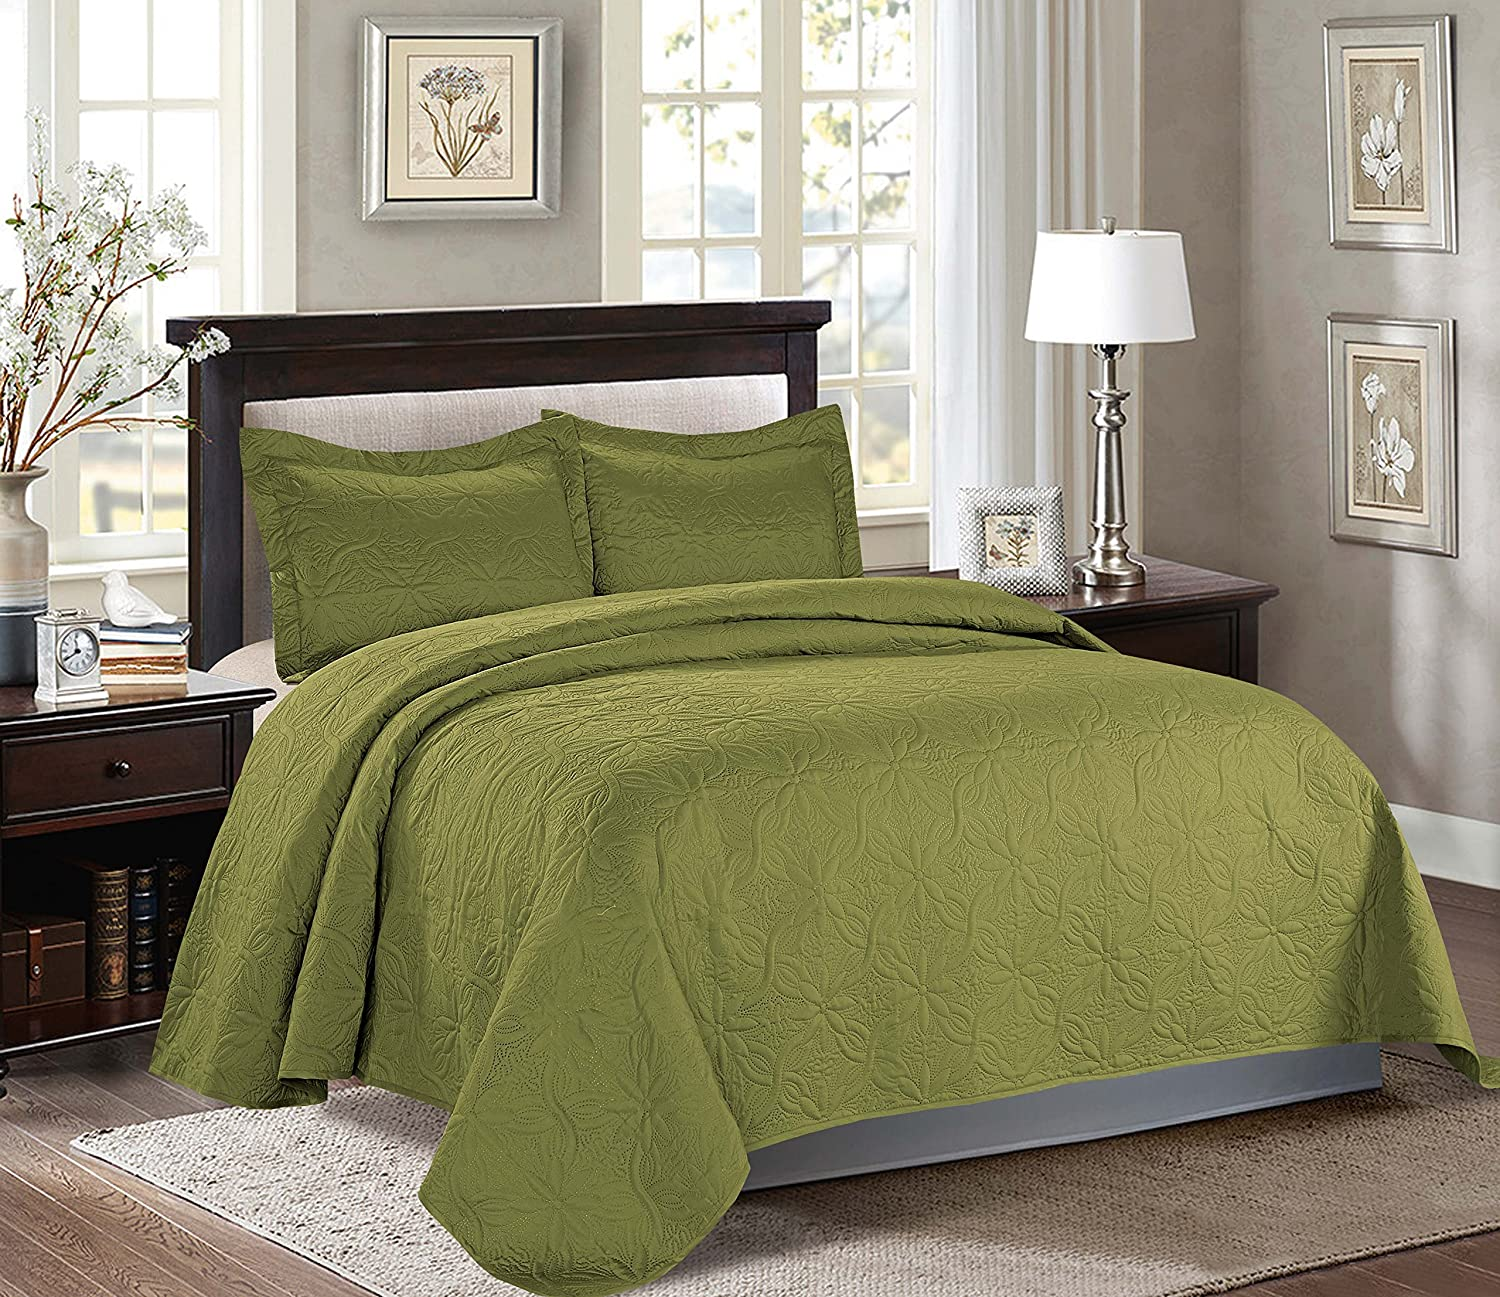 Maiija 3 Piece Embossed Floral Pattern Oversized Bedspread Coverlet King, Sage